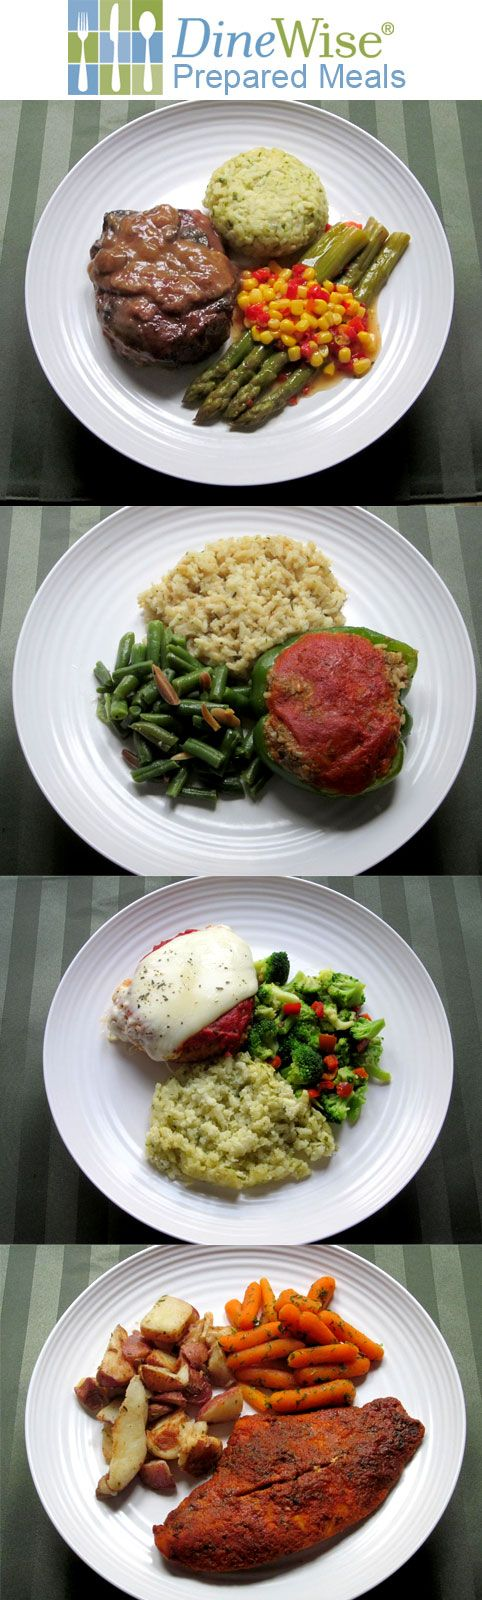 Four Delicious DineWise Prepared Meals. http://www.dinewisecoupons.com